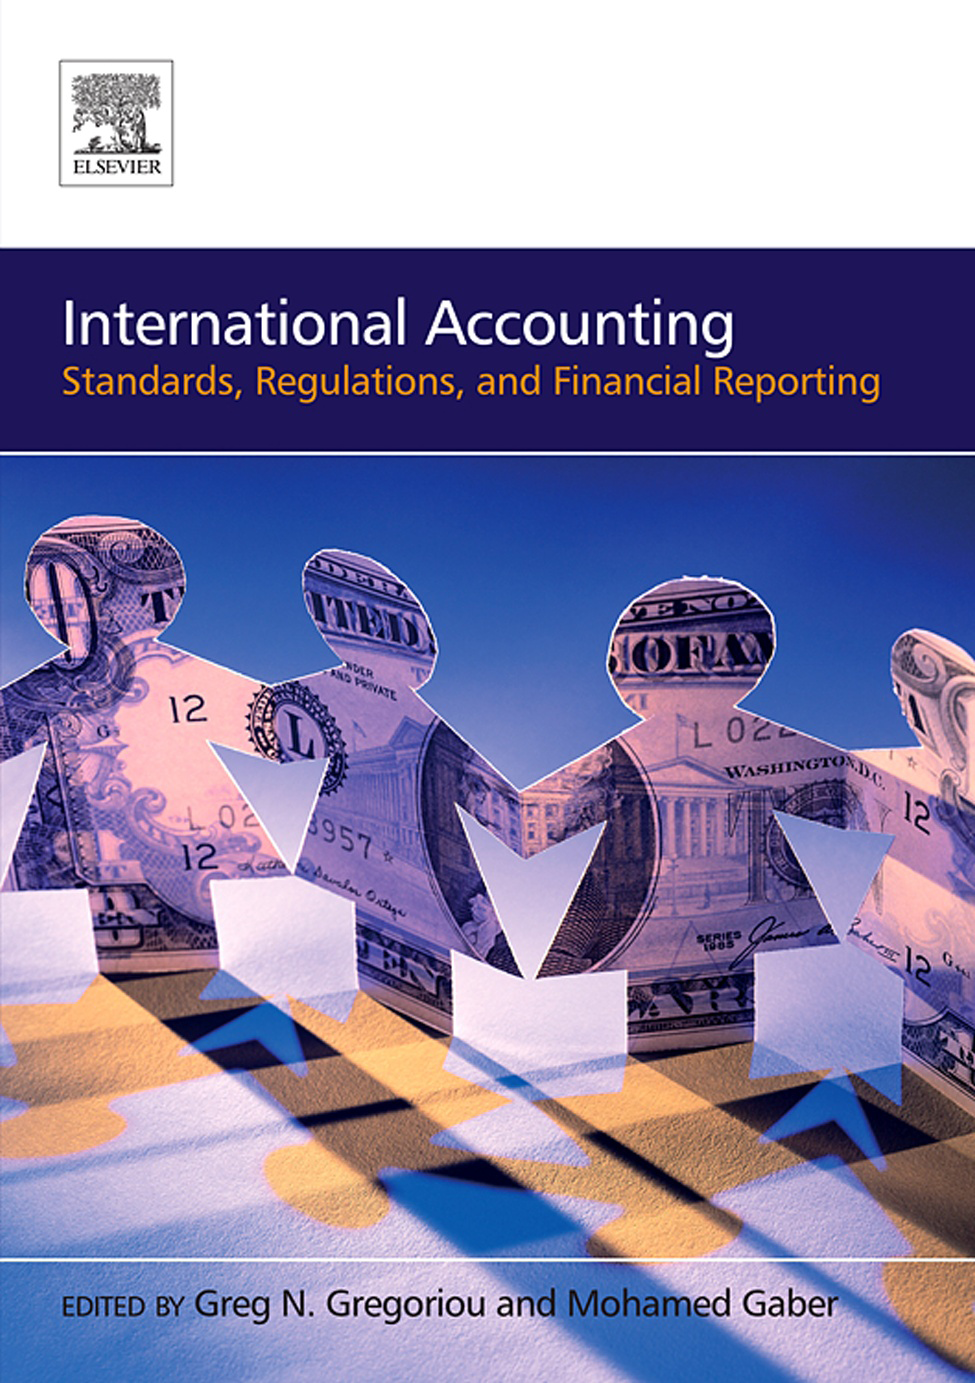 Download the latest version of Financial Accounting free ...